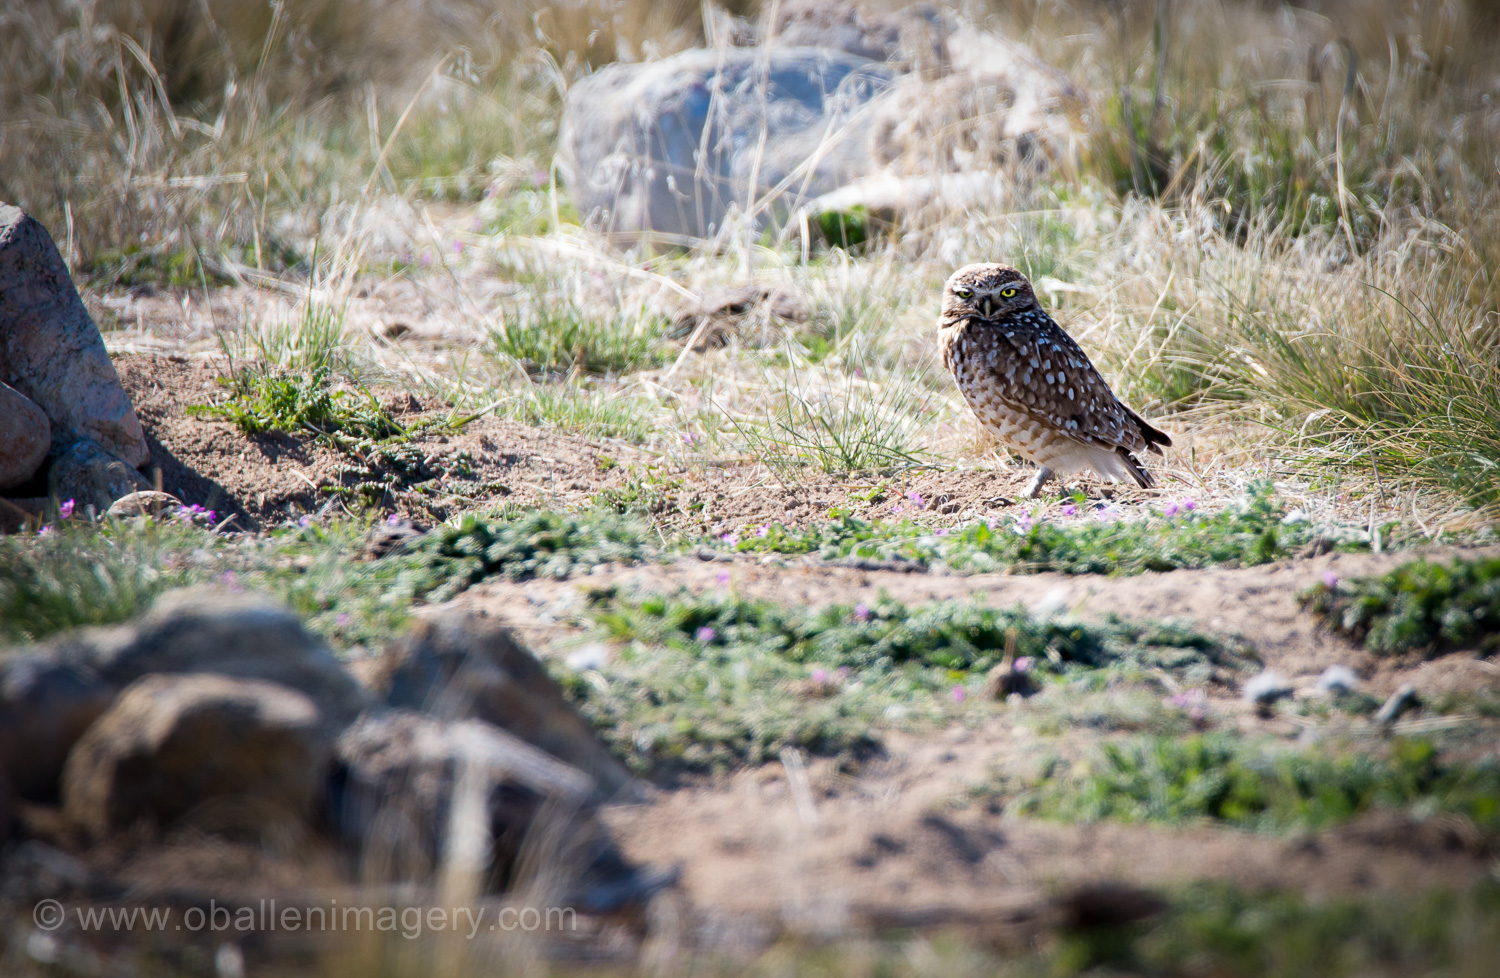 The Burrowing Owl was found on the way to the campground. Notice the baby near the rock on the left.